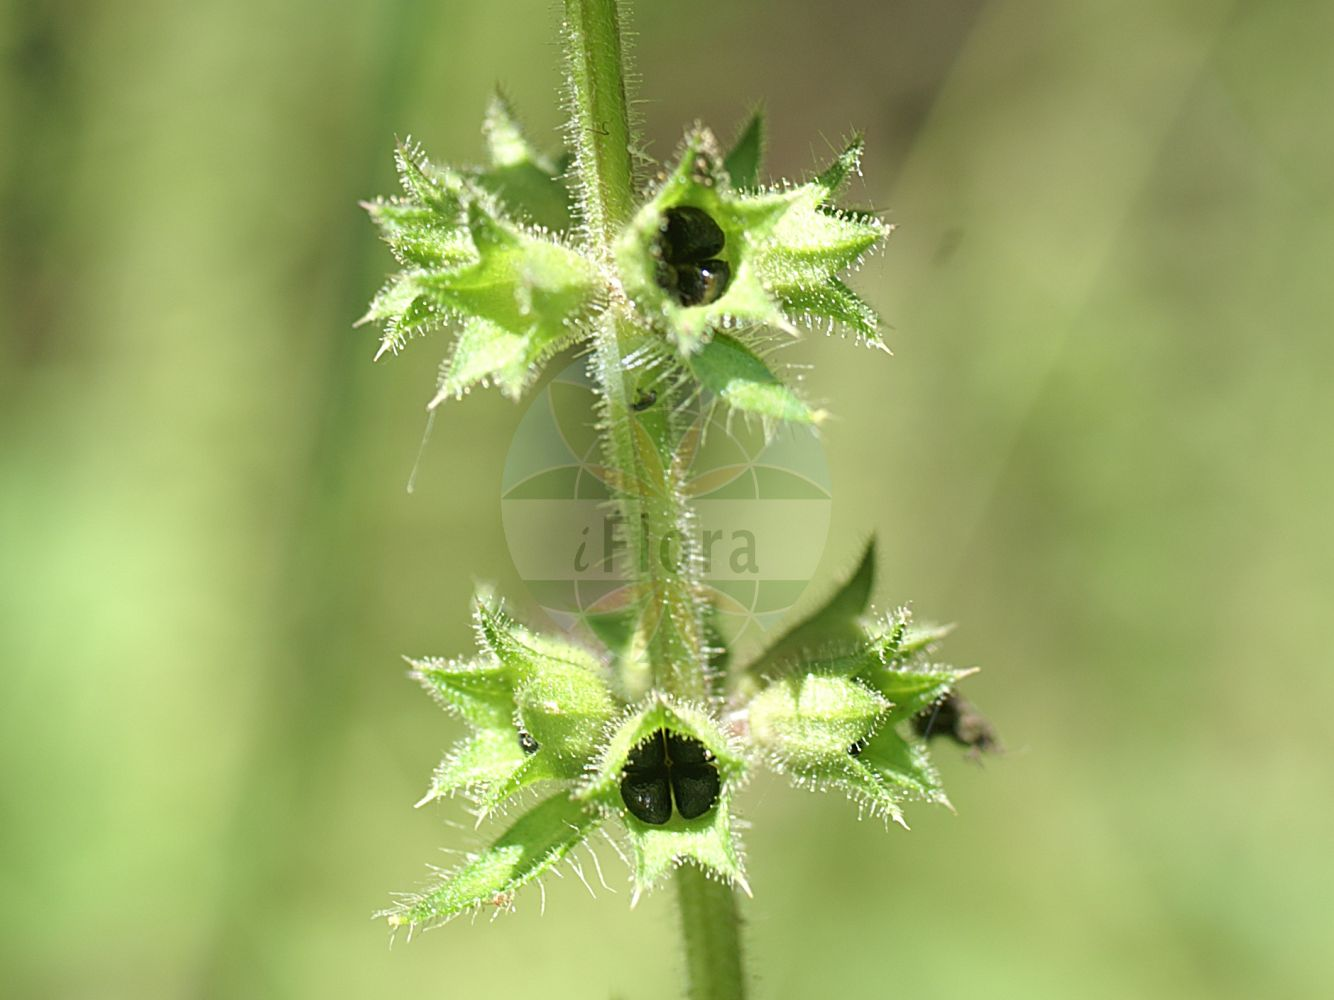 Foto von Stachys sylvatica (Wald-Ziest - Hedge Woundwort). Das Foto wurde in Hessen, Deutschland, Vogelsberg und angrenzende Sandsteingebiete aufgenommen. ---- Photo of Stachys sylvatica (Wald-Ziest - Hedge Woundwort).The picture was taken in Hesse, Germany, Vogelsberg and adjacent sandstone areas.(Stachys sylvatica,Wald-Ziest,Hedge Woundwort,Stachys canariensis,Stachys cordata,Stachys cordatifolia,Stachys foetida,Stachys glaucescens,Stachys trapezuntea,Hedge Stachys,Whitespot,Wood Betony,Stachys,Ziest,Hedgenettle,Lamiaceae,Lippenbluetengewaechse;Lippenbluetler,Nettle family)